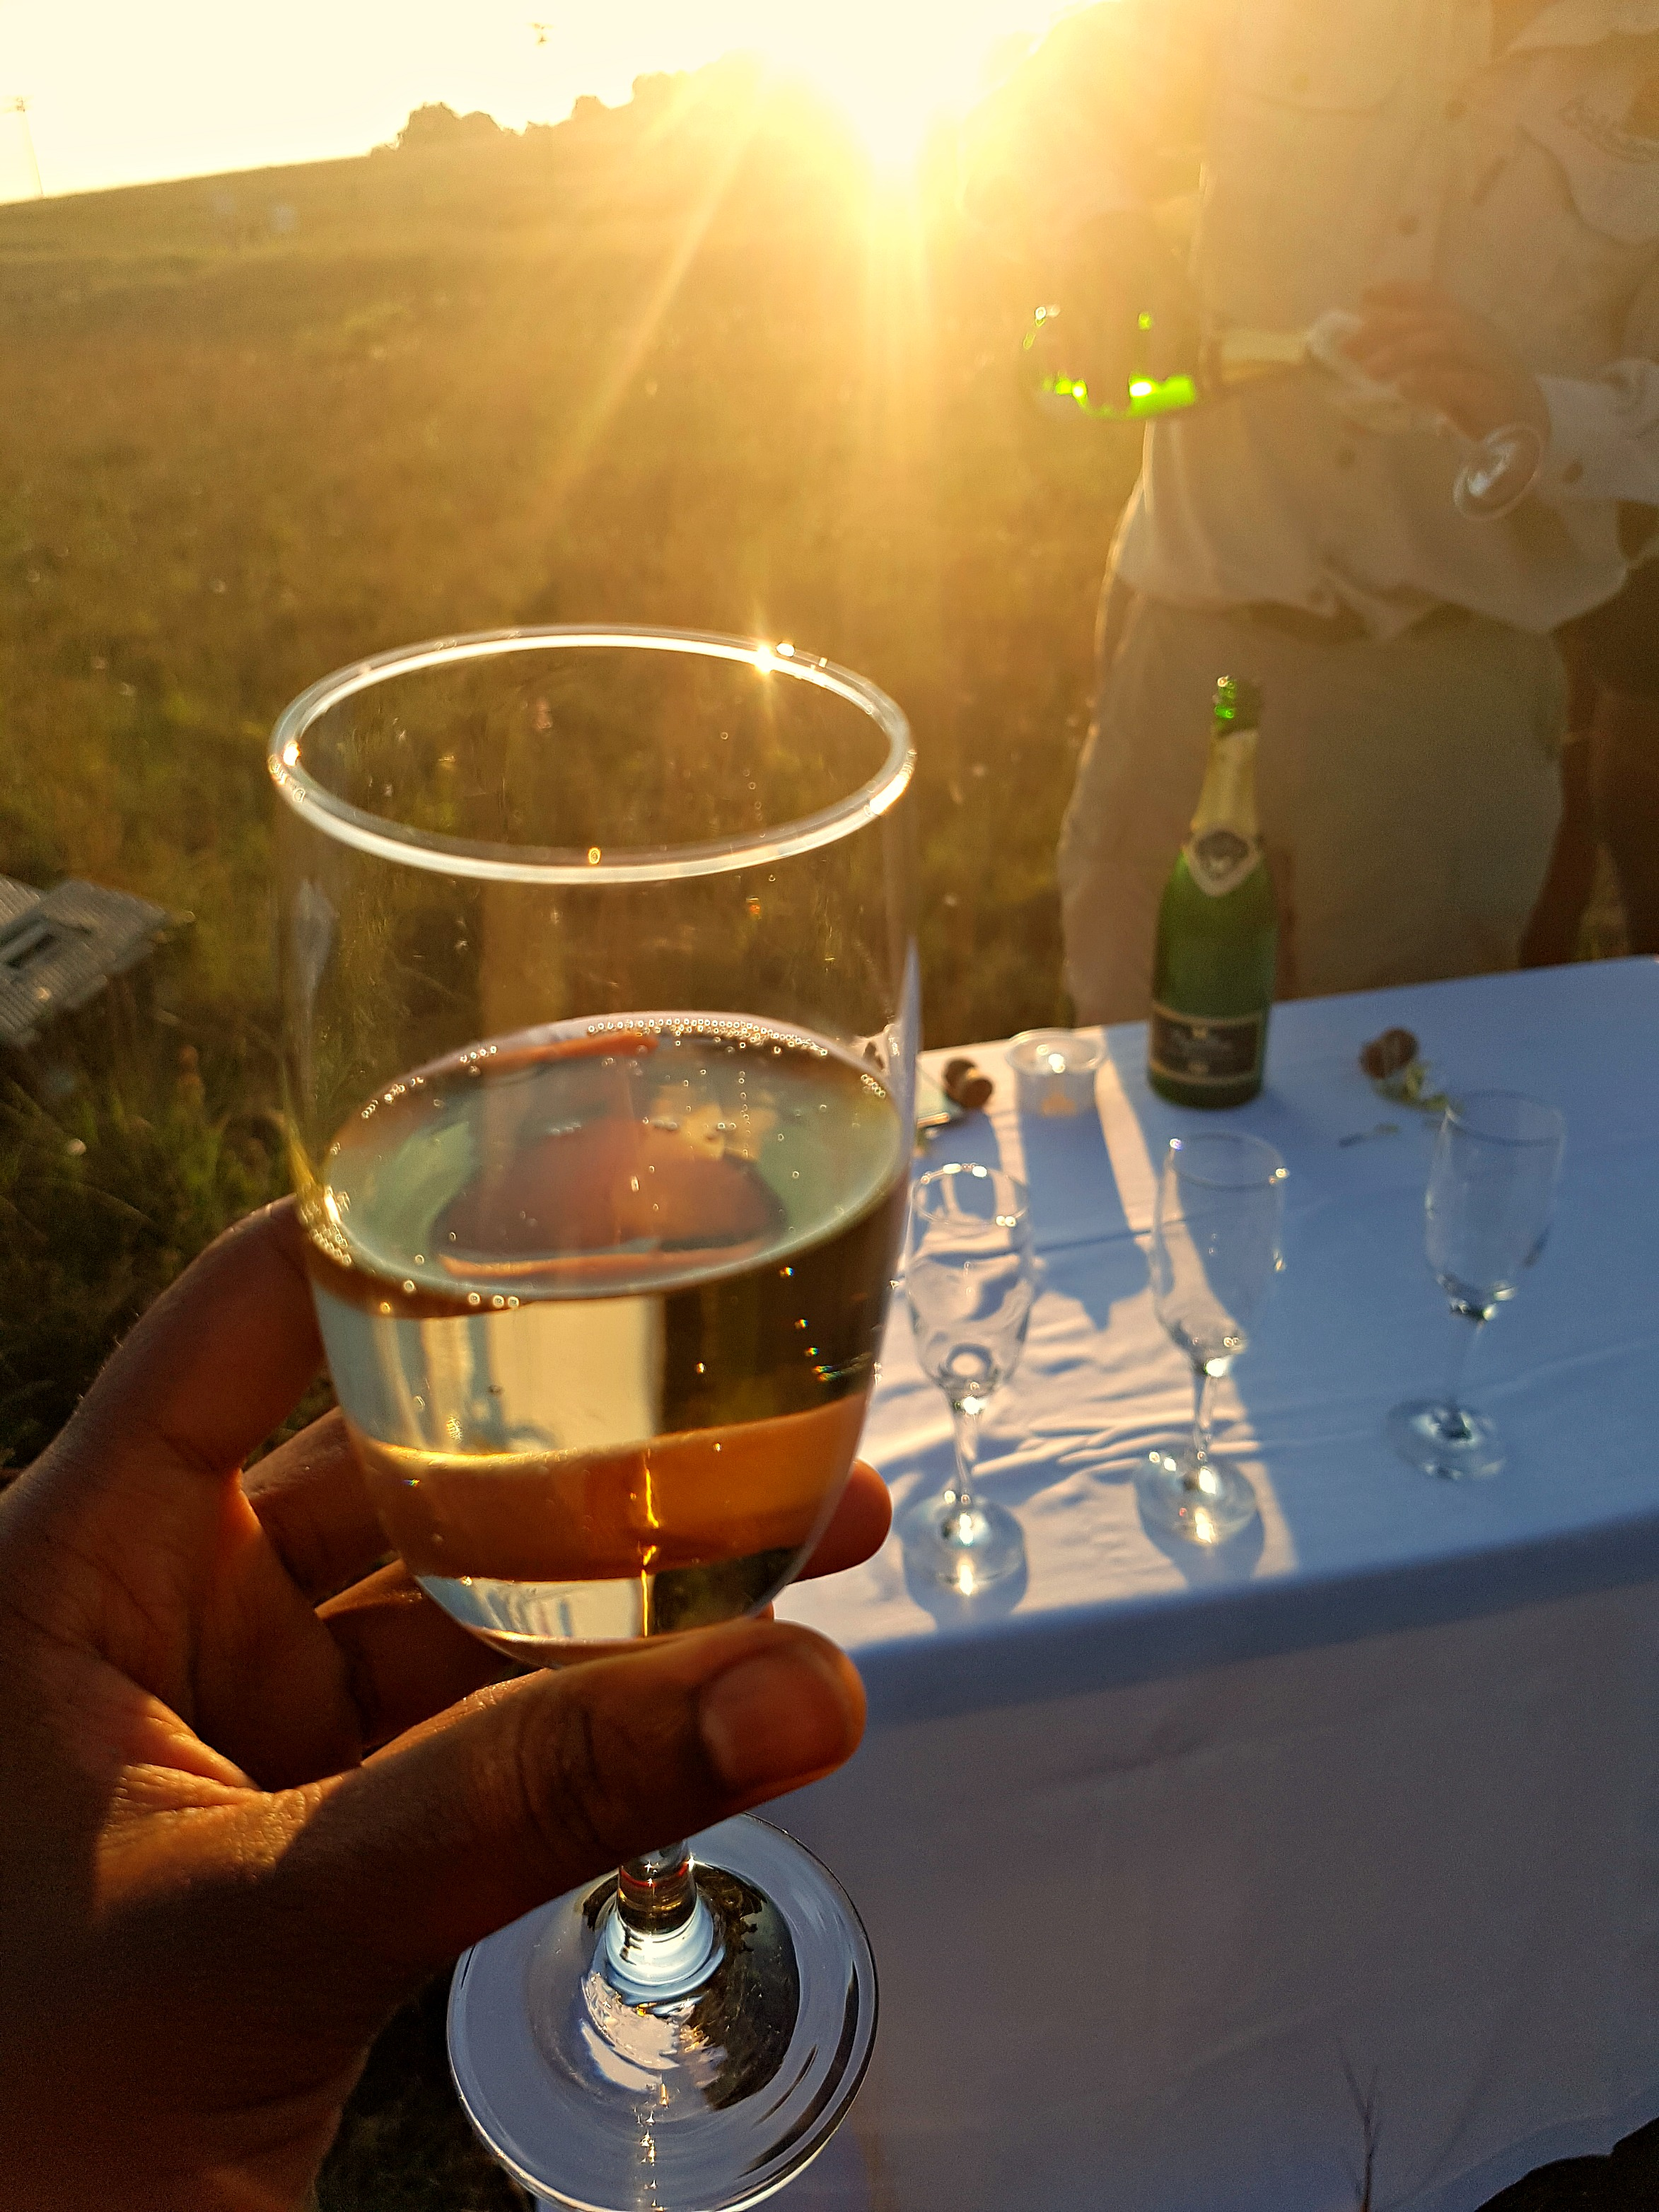 champagne-in-the-bush-after-a-balloon-ride-at-glenburg-spa-courtesy-of-airventures_kaluhiskitchen-com